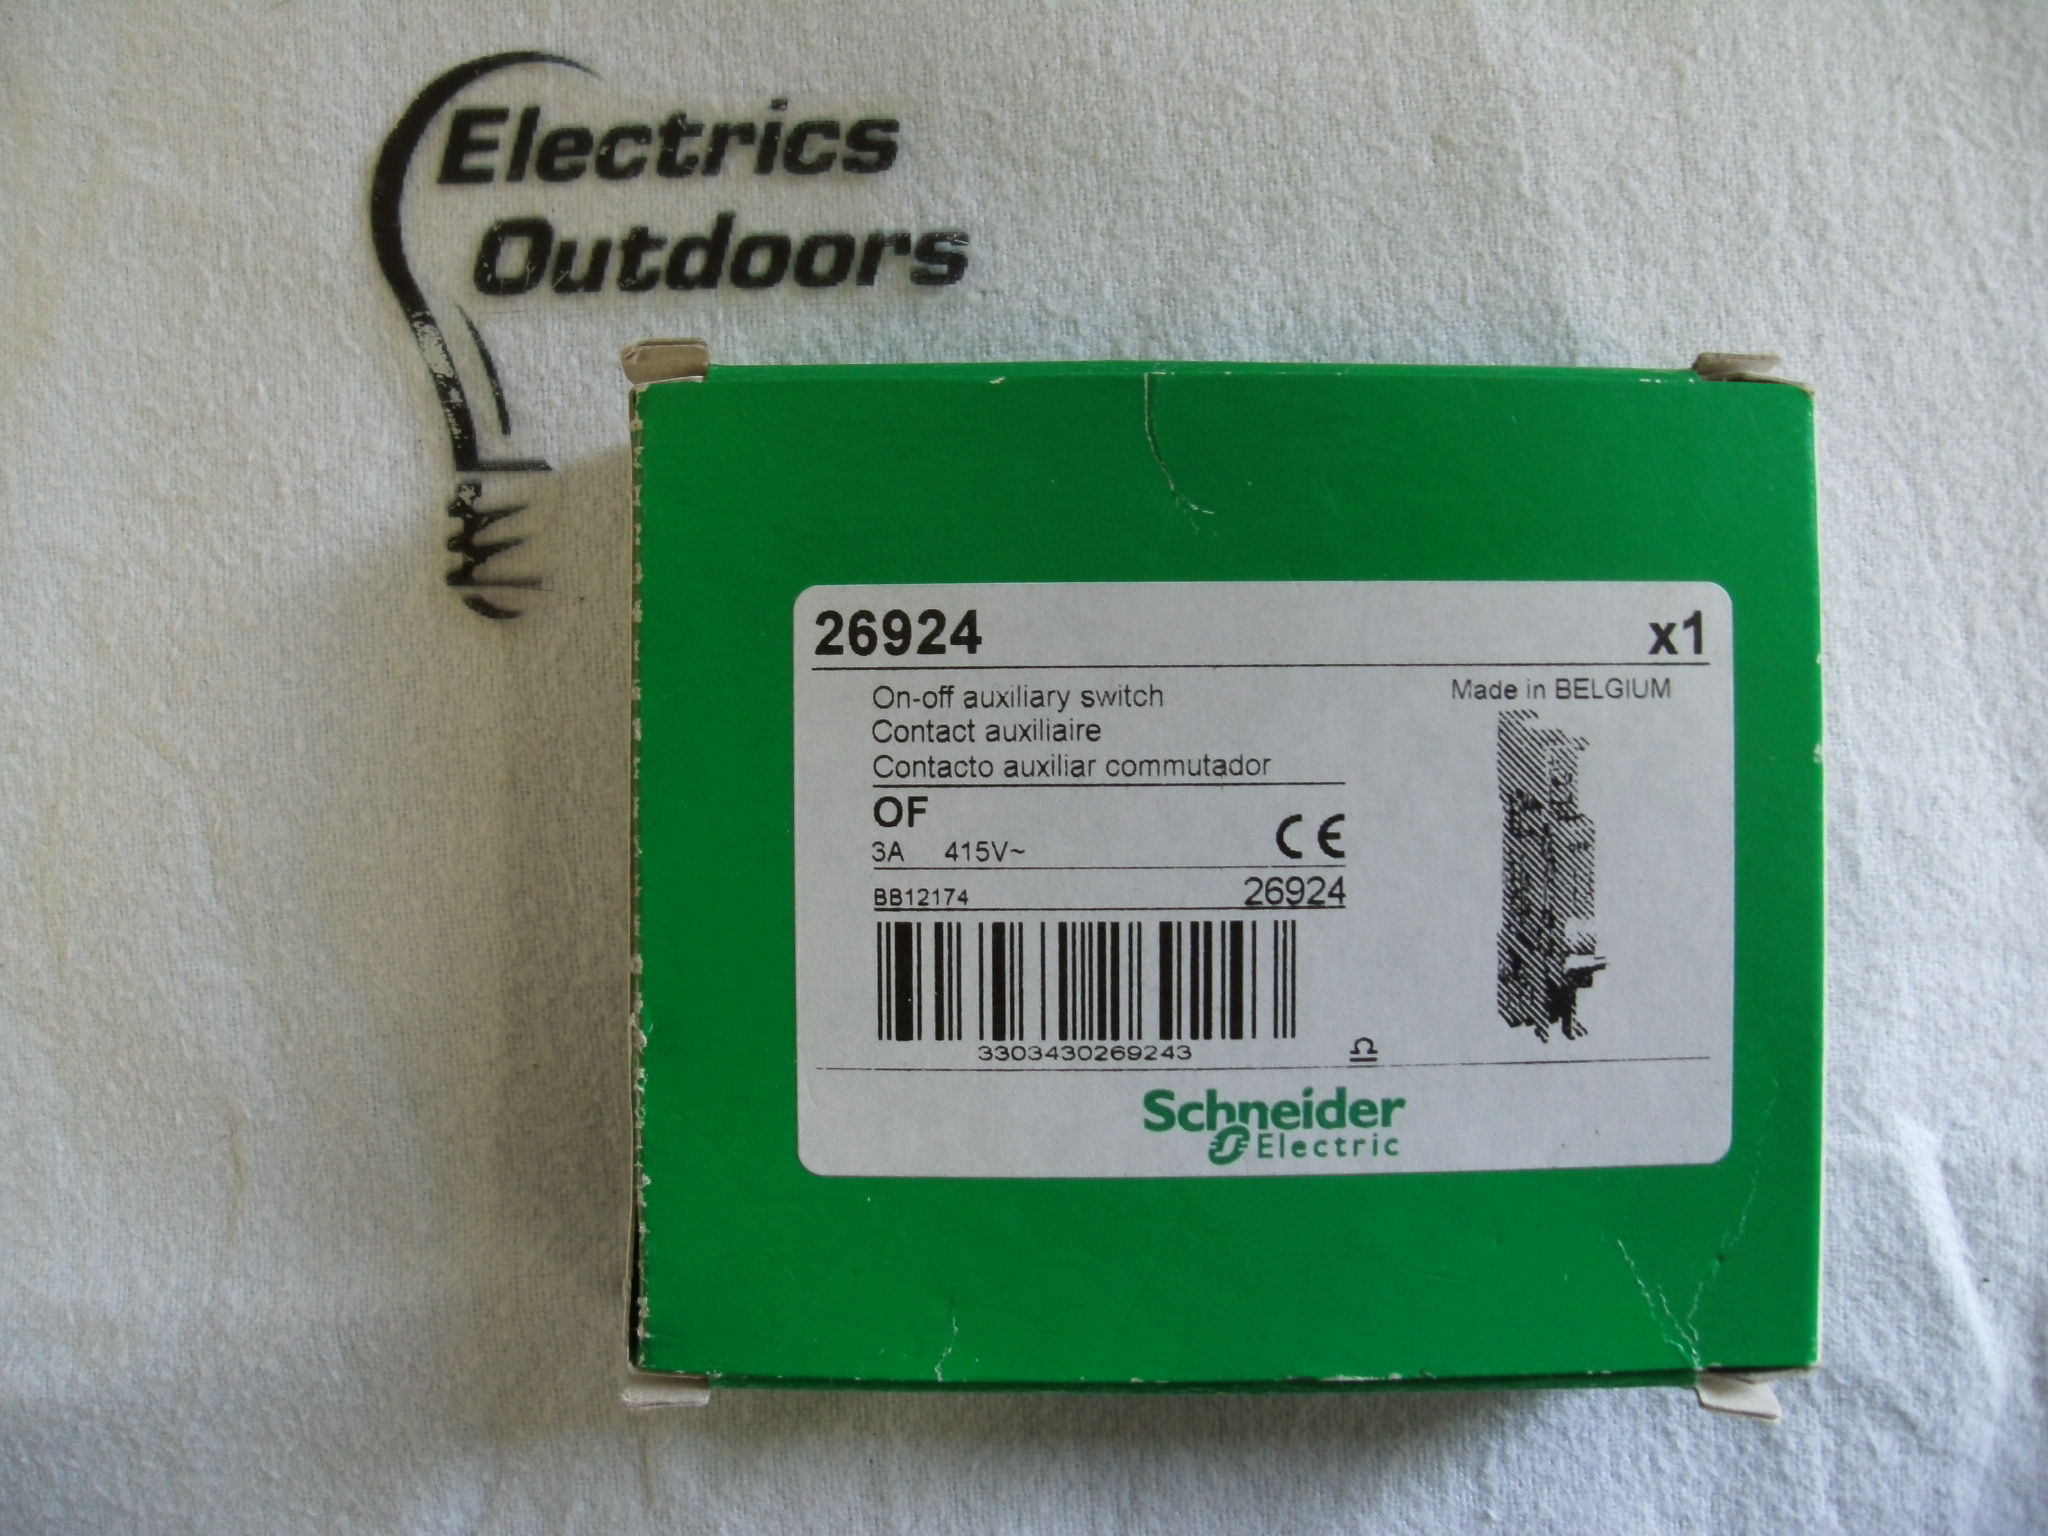 SCHNEIDER ELECTRIC 3 AMP ON OFF AUXILIARY SWITCH 415V OF 26924